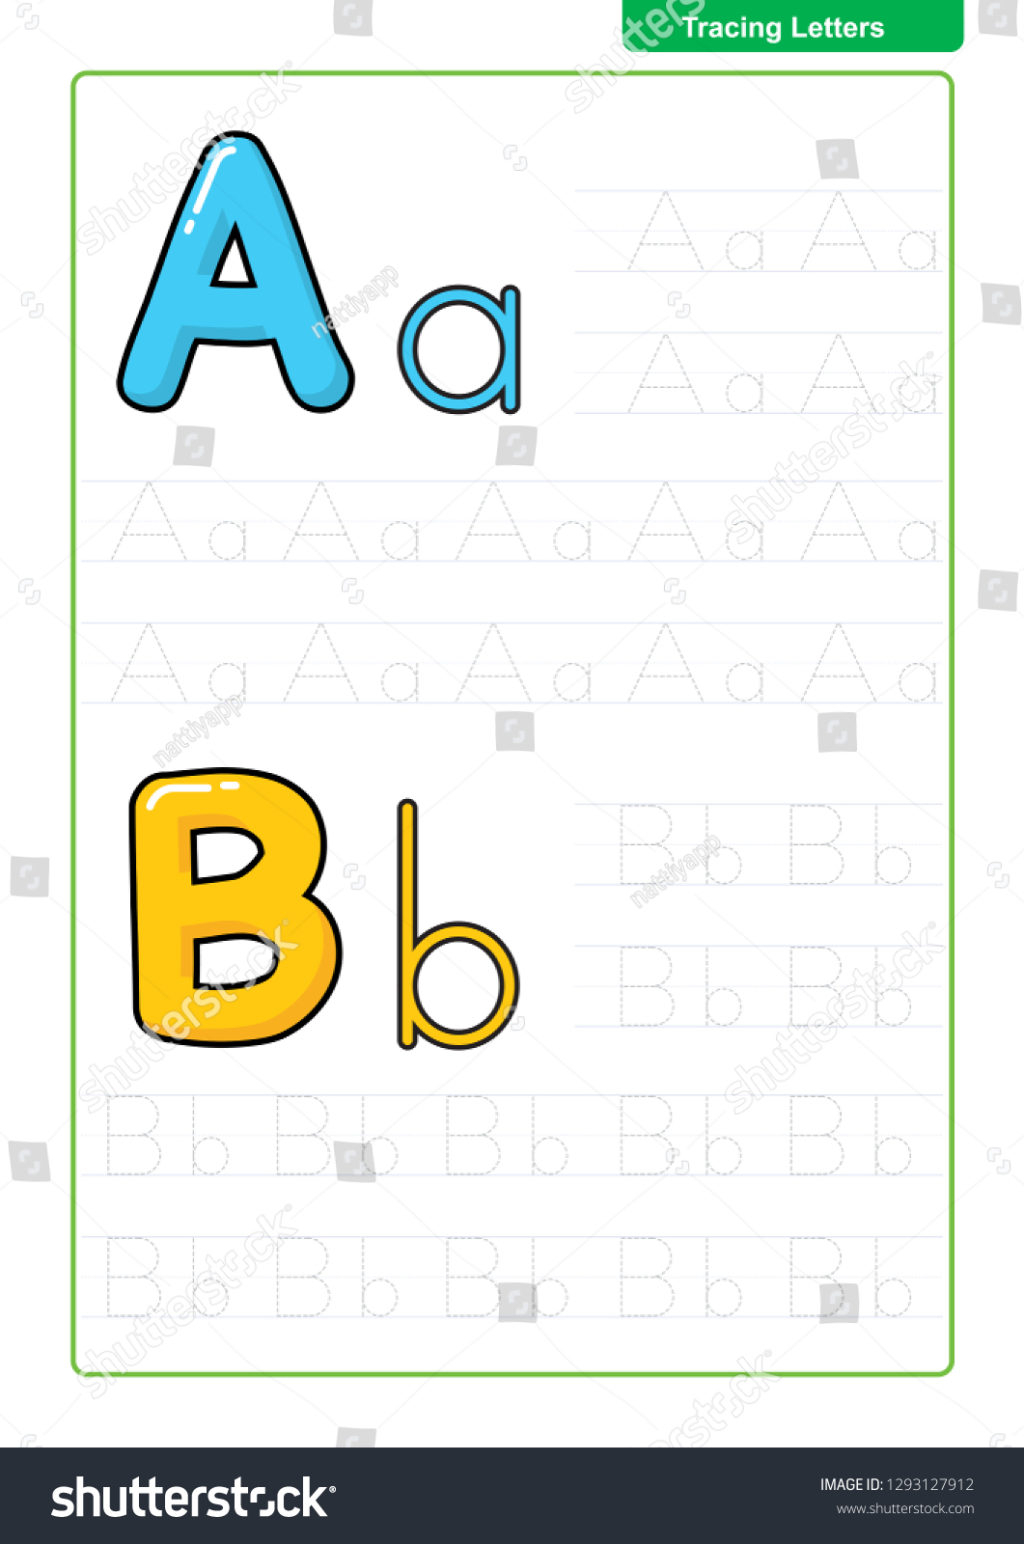 Worksheet ~ Stock Vector Alphabet Letters Tracing Worksheet with regard to Letter Tracing Vector